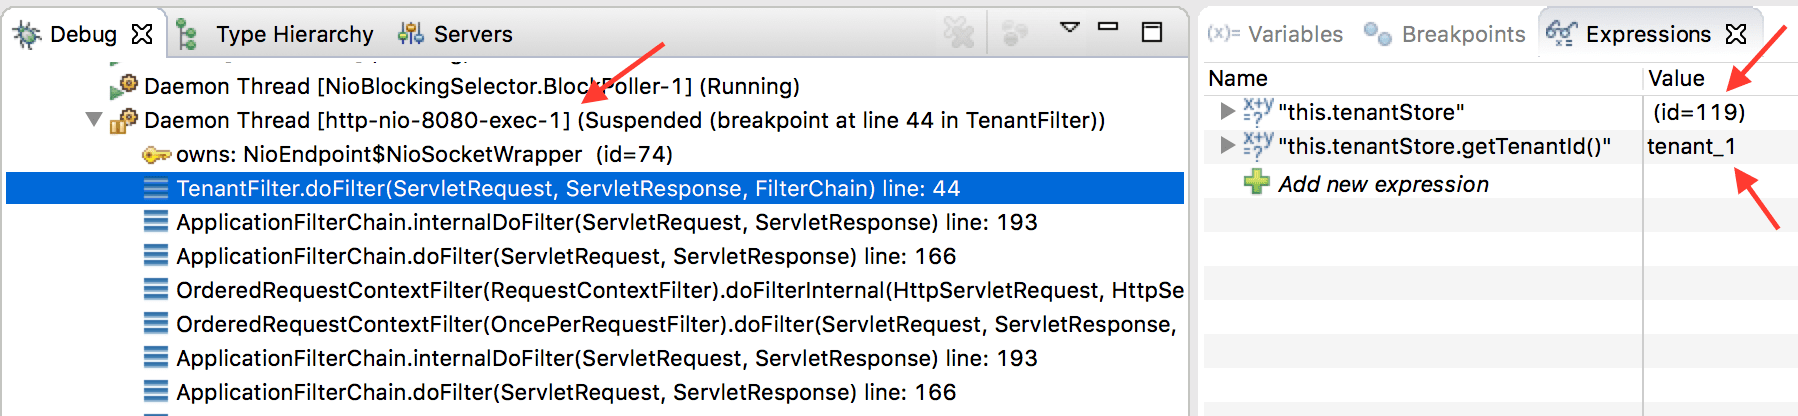 TenantFilter breakpoint request #1